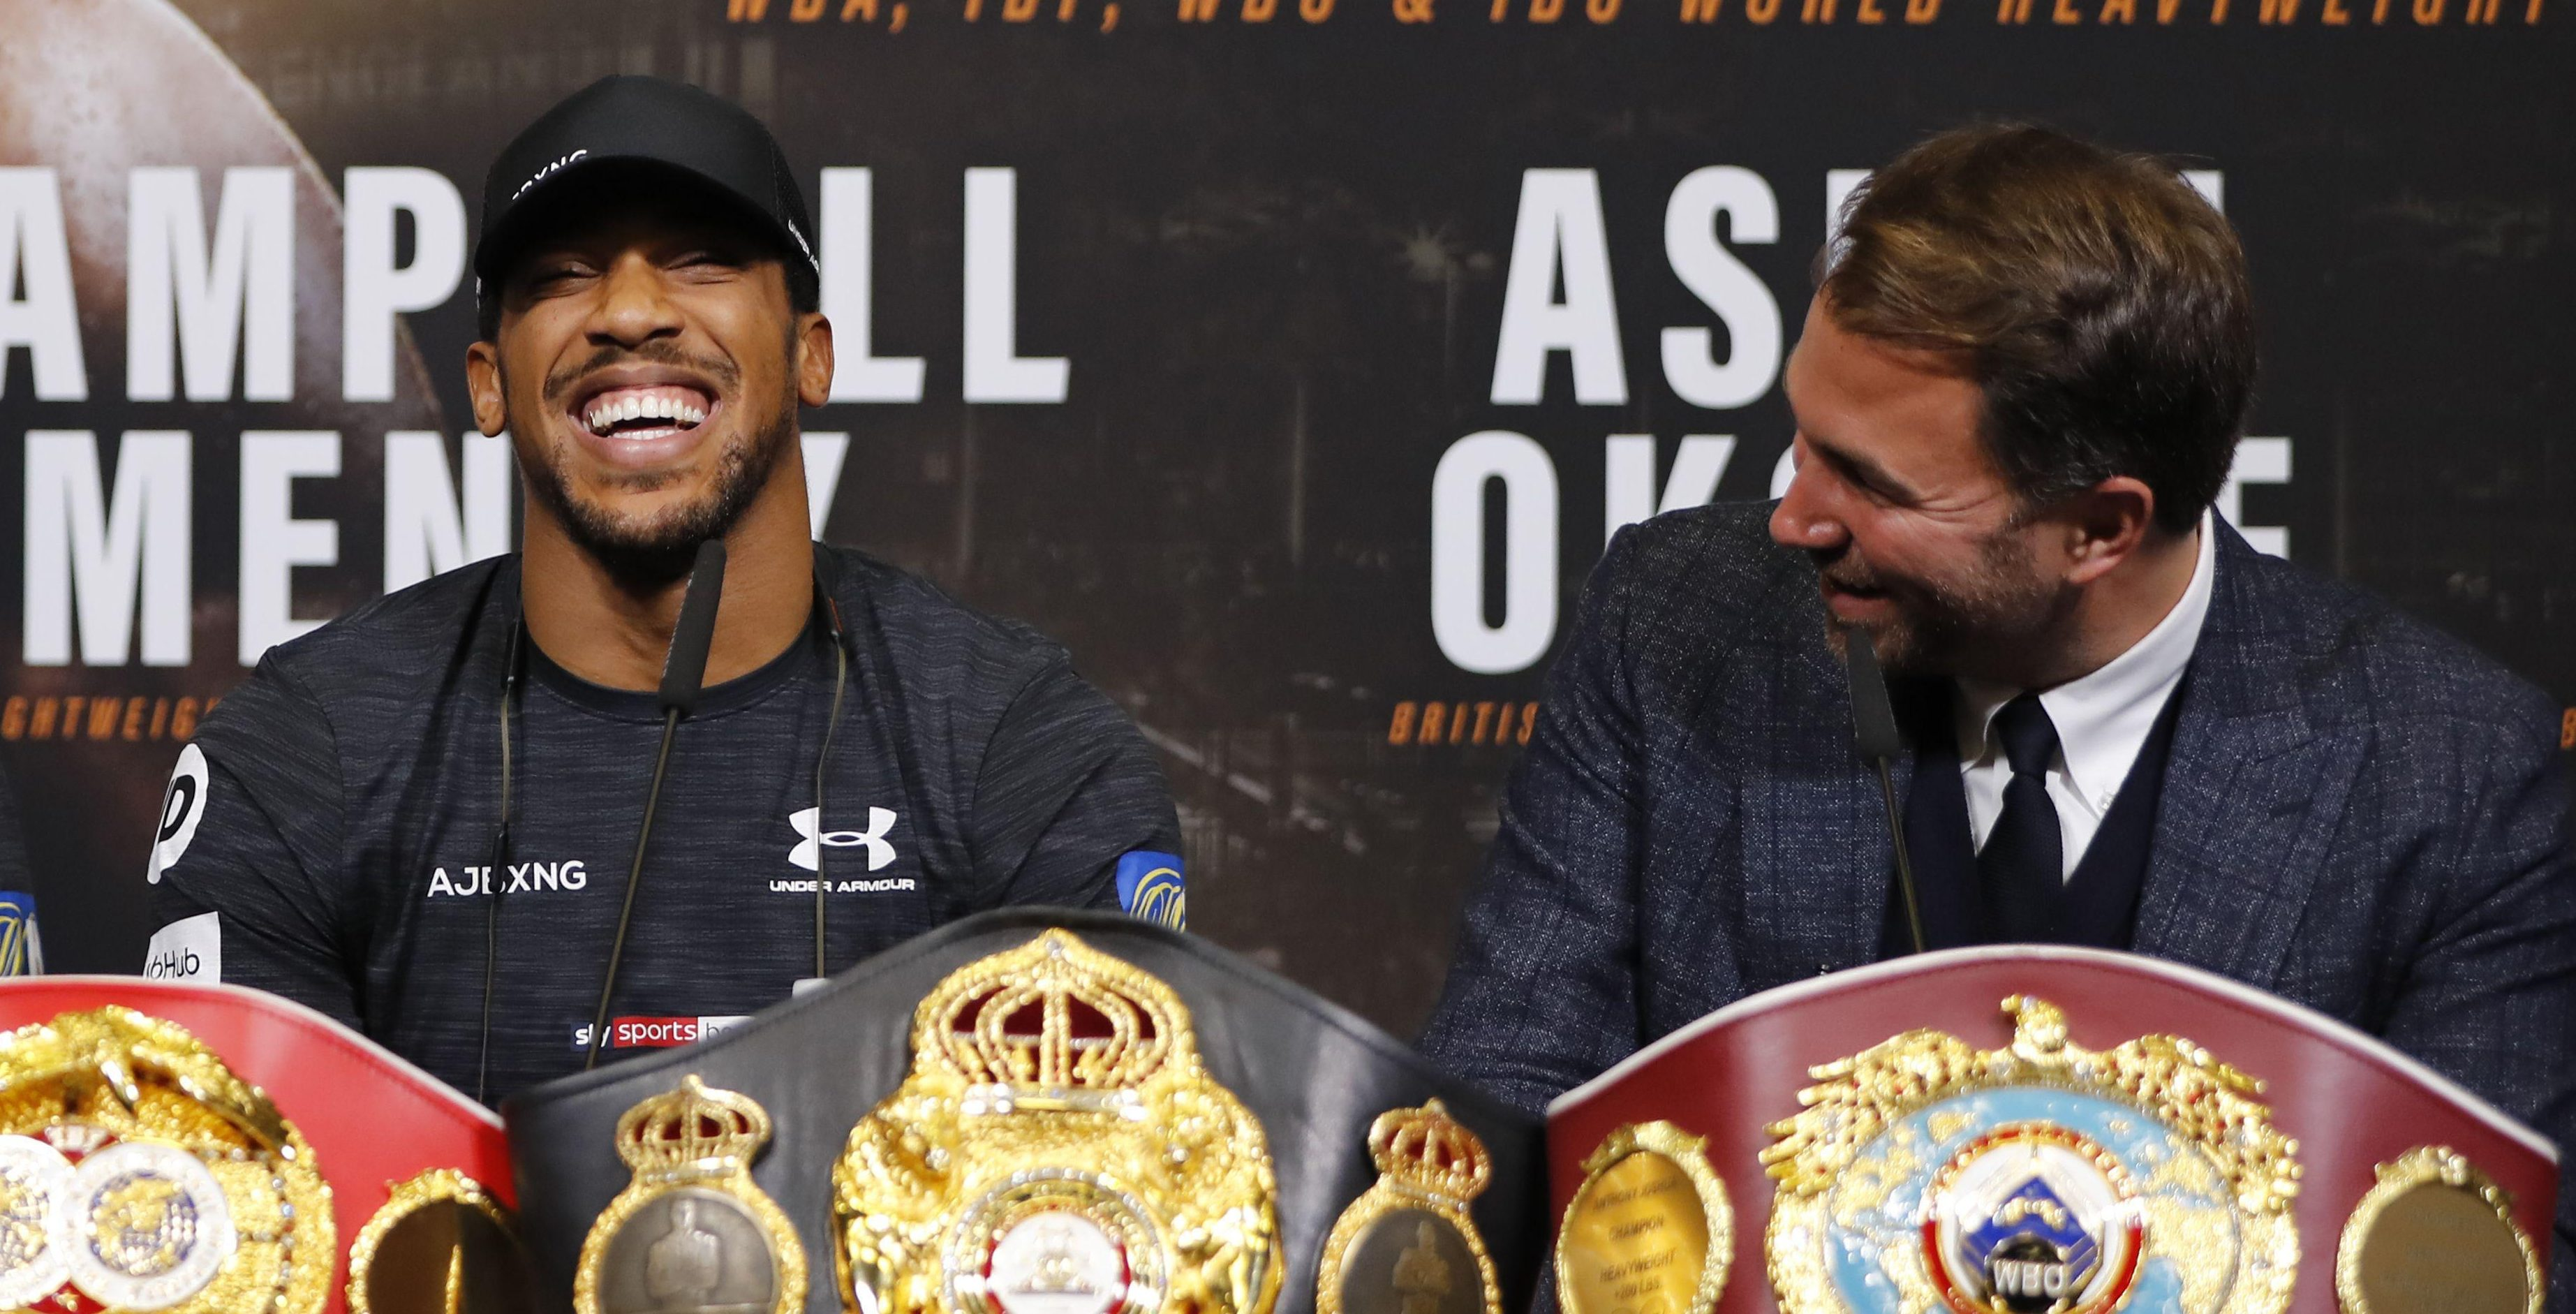 Anthony Joshua is still to nail down a unification scrap against Deontay Wilder - but his promoter's latest comments might help it happen